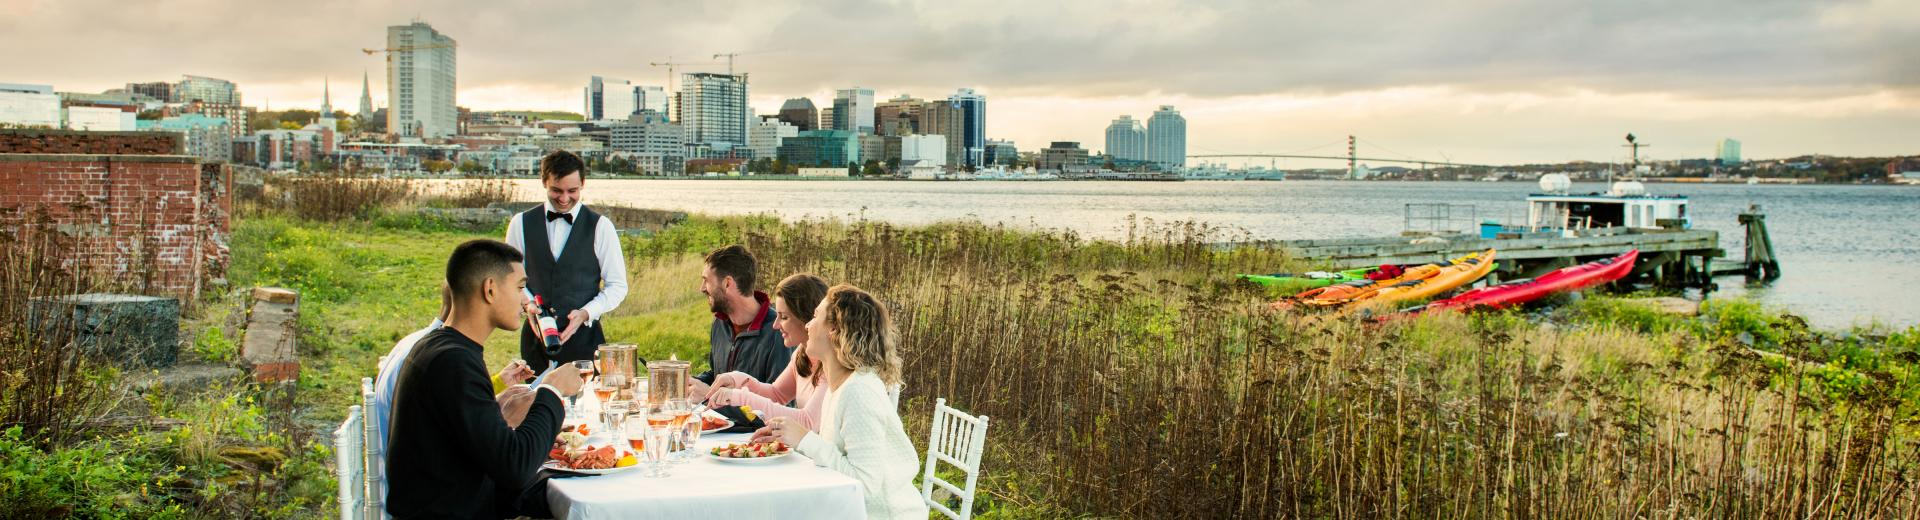 Gourmet dining and glamping on Georges Island